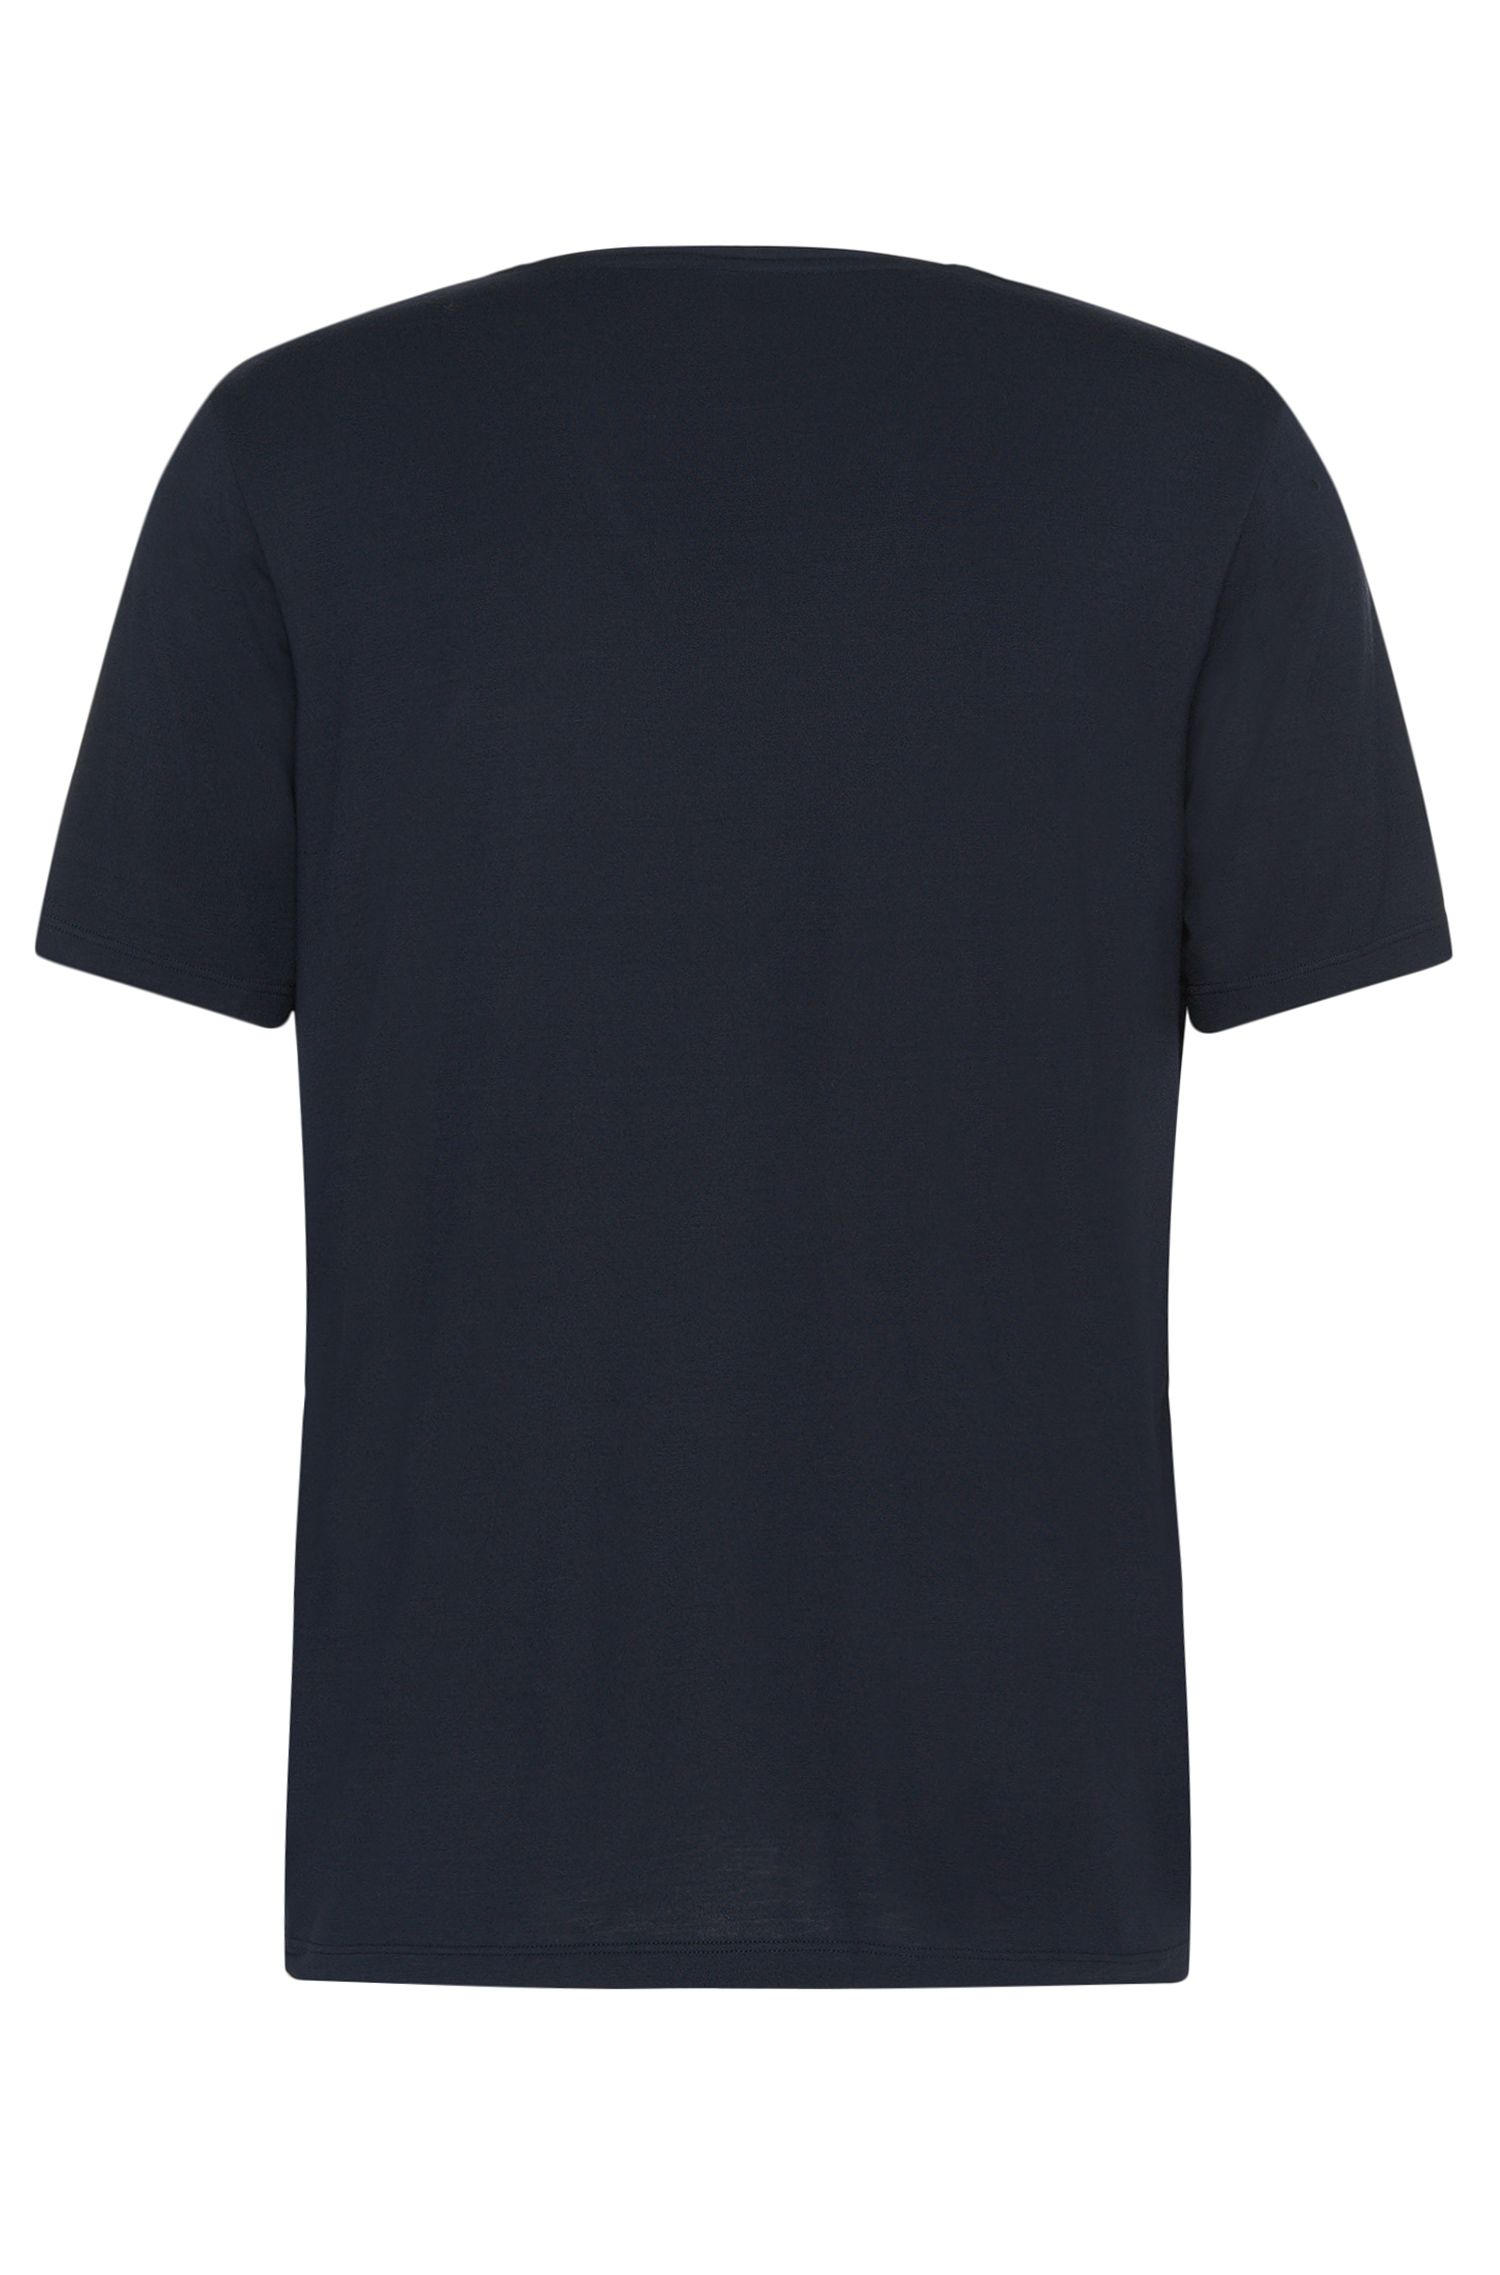 Regular-Fit T-Shirt aus Stretch-Modal: 'Shirt VN'